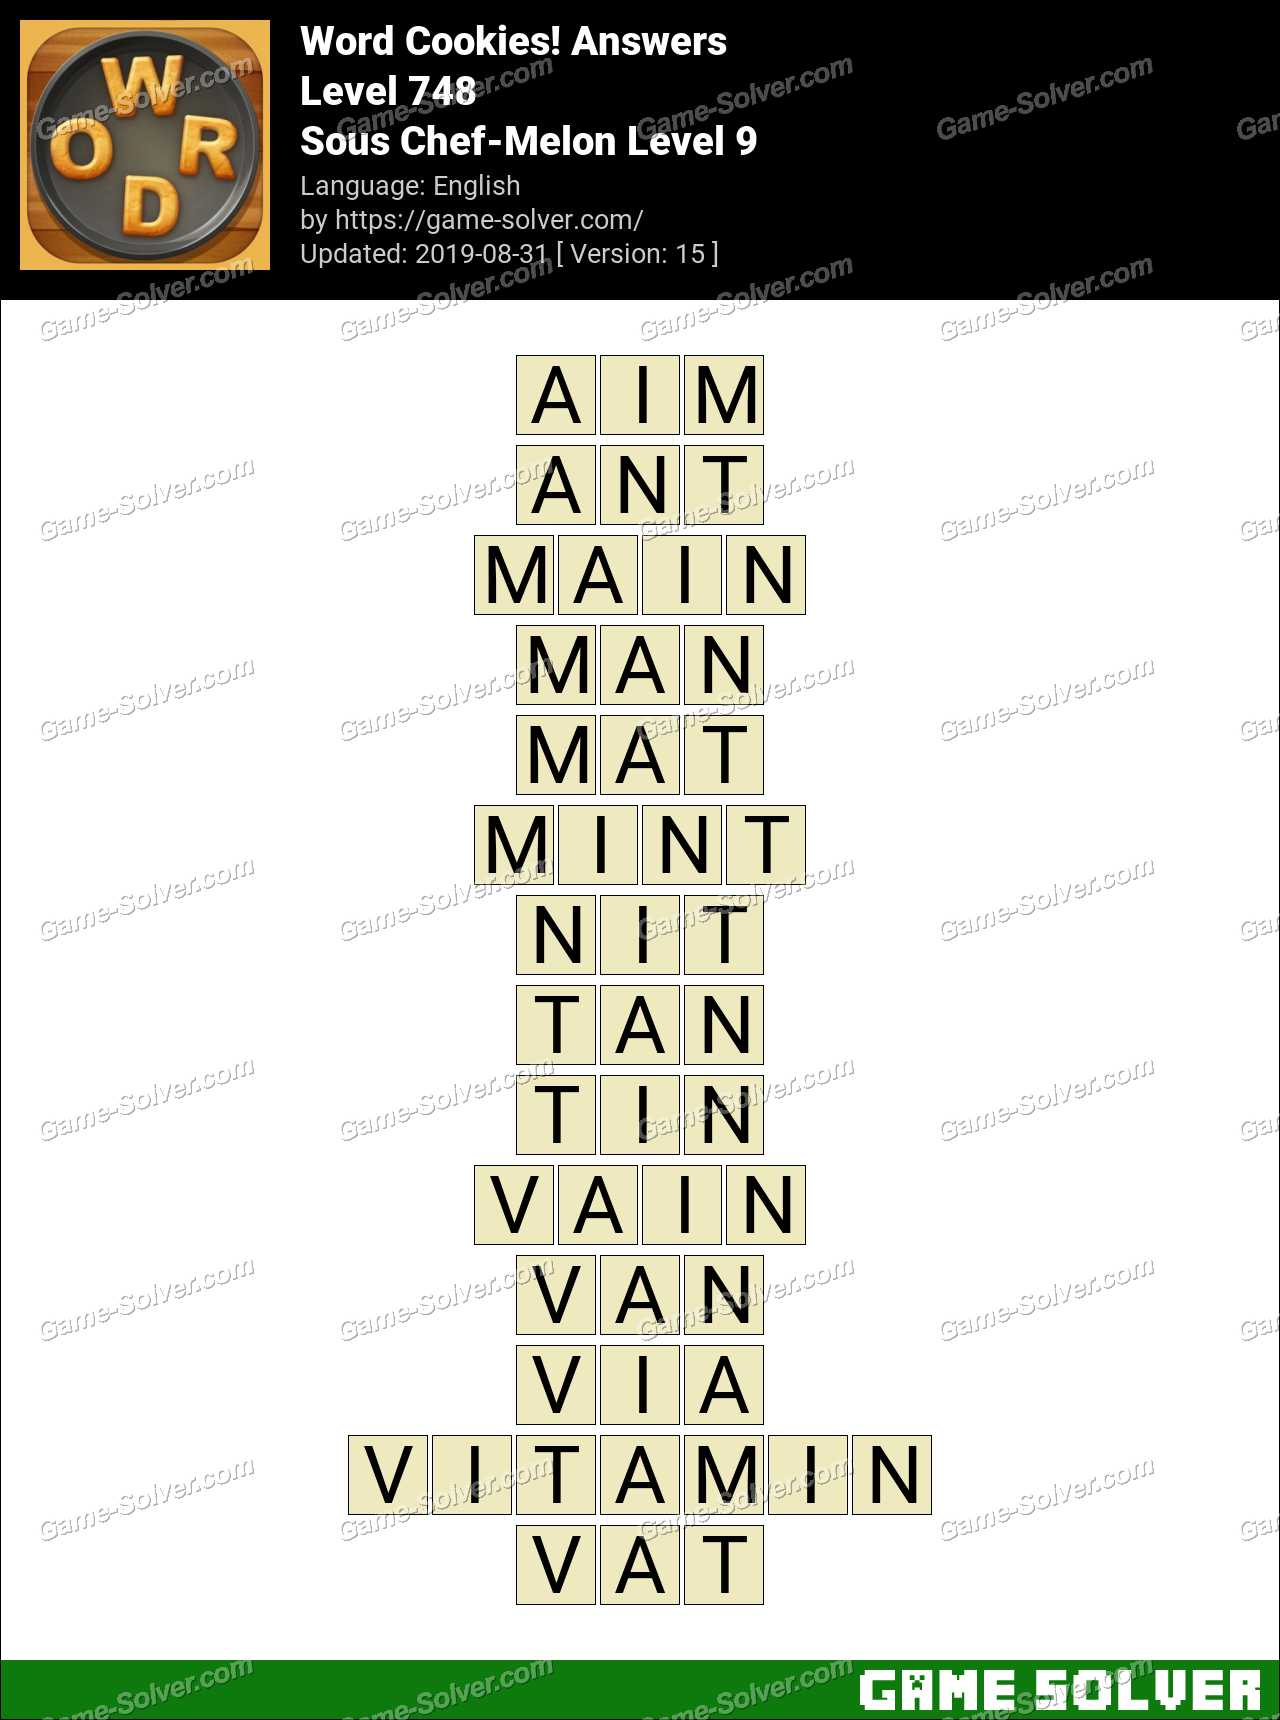 Word Cookies Sous Chef-Melon Level 9 Answers